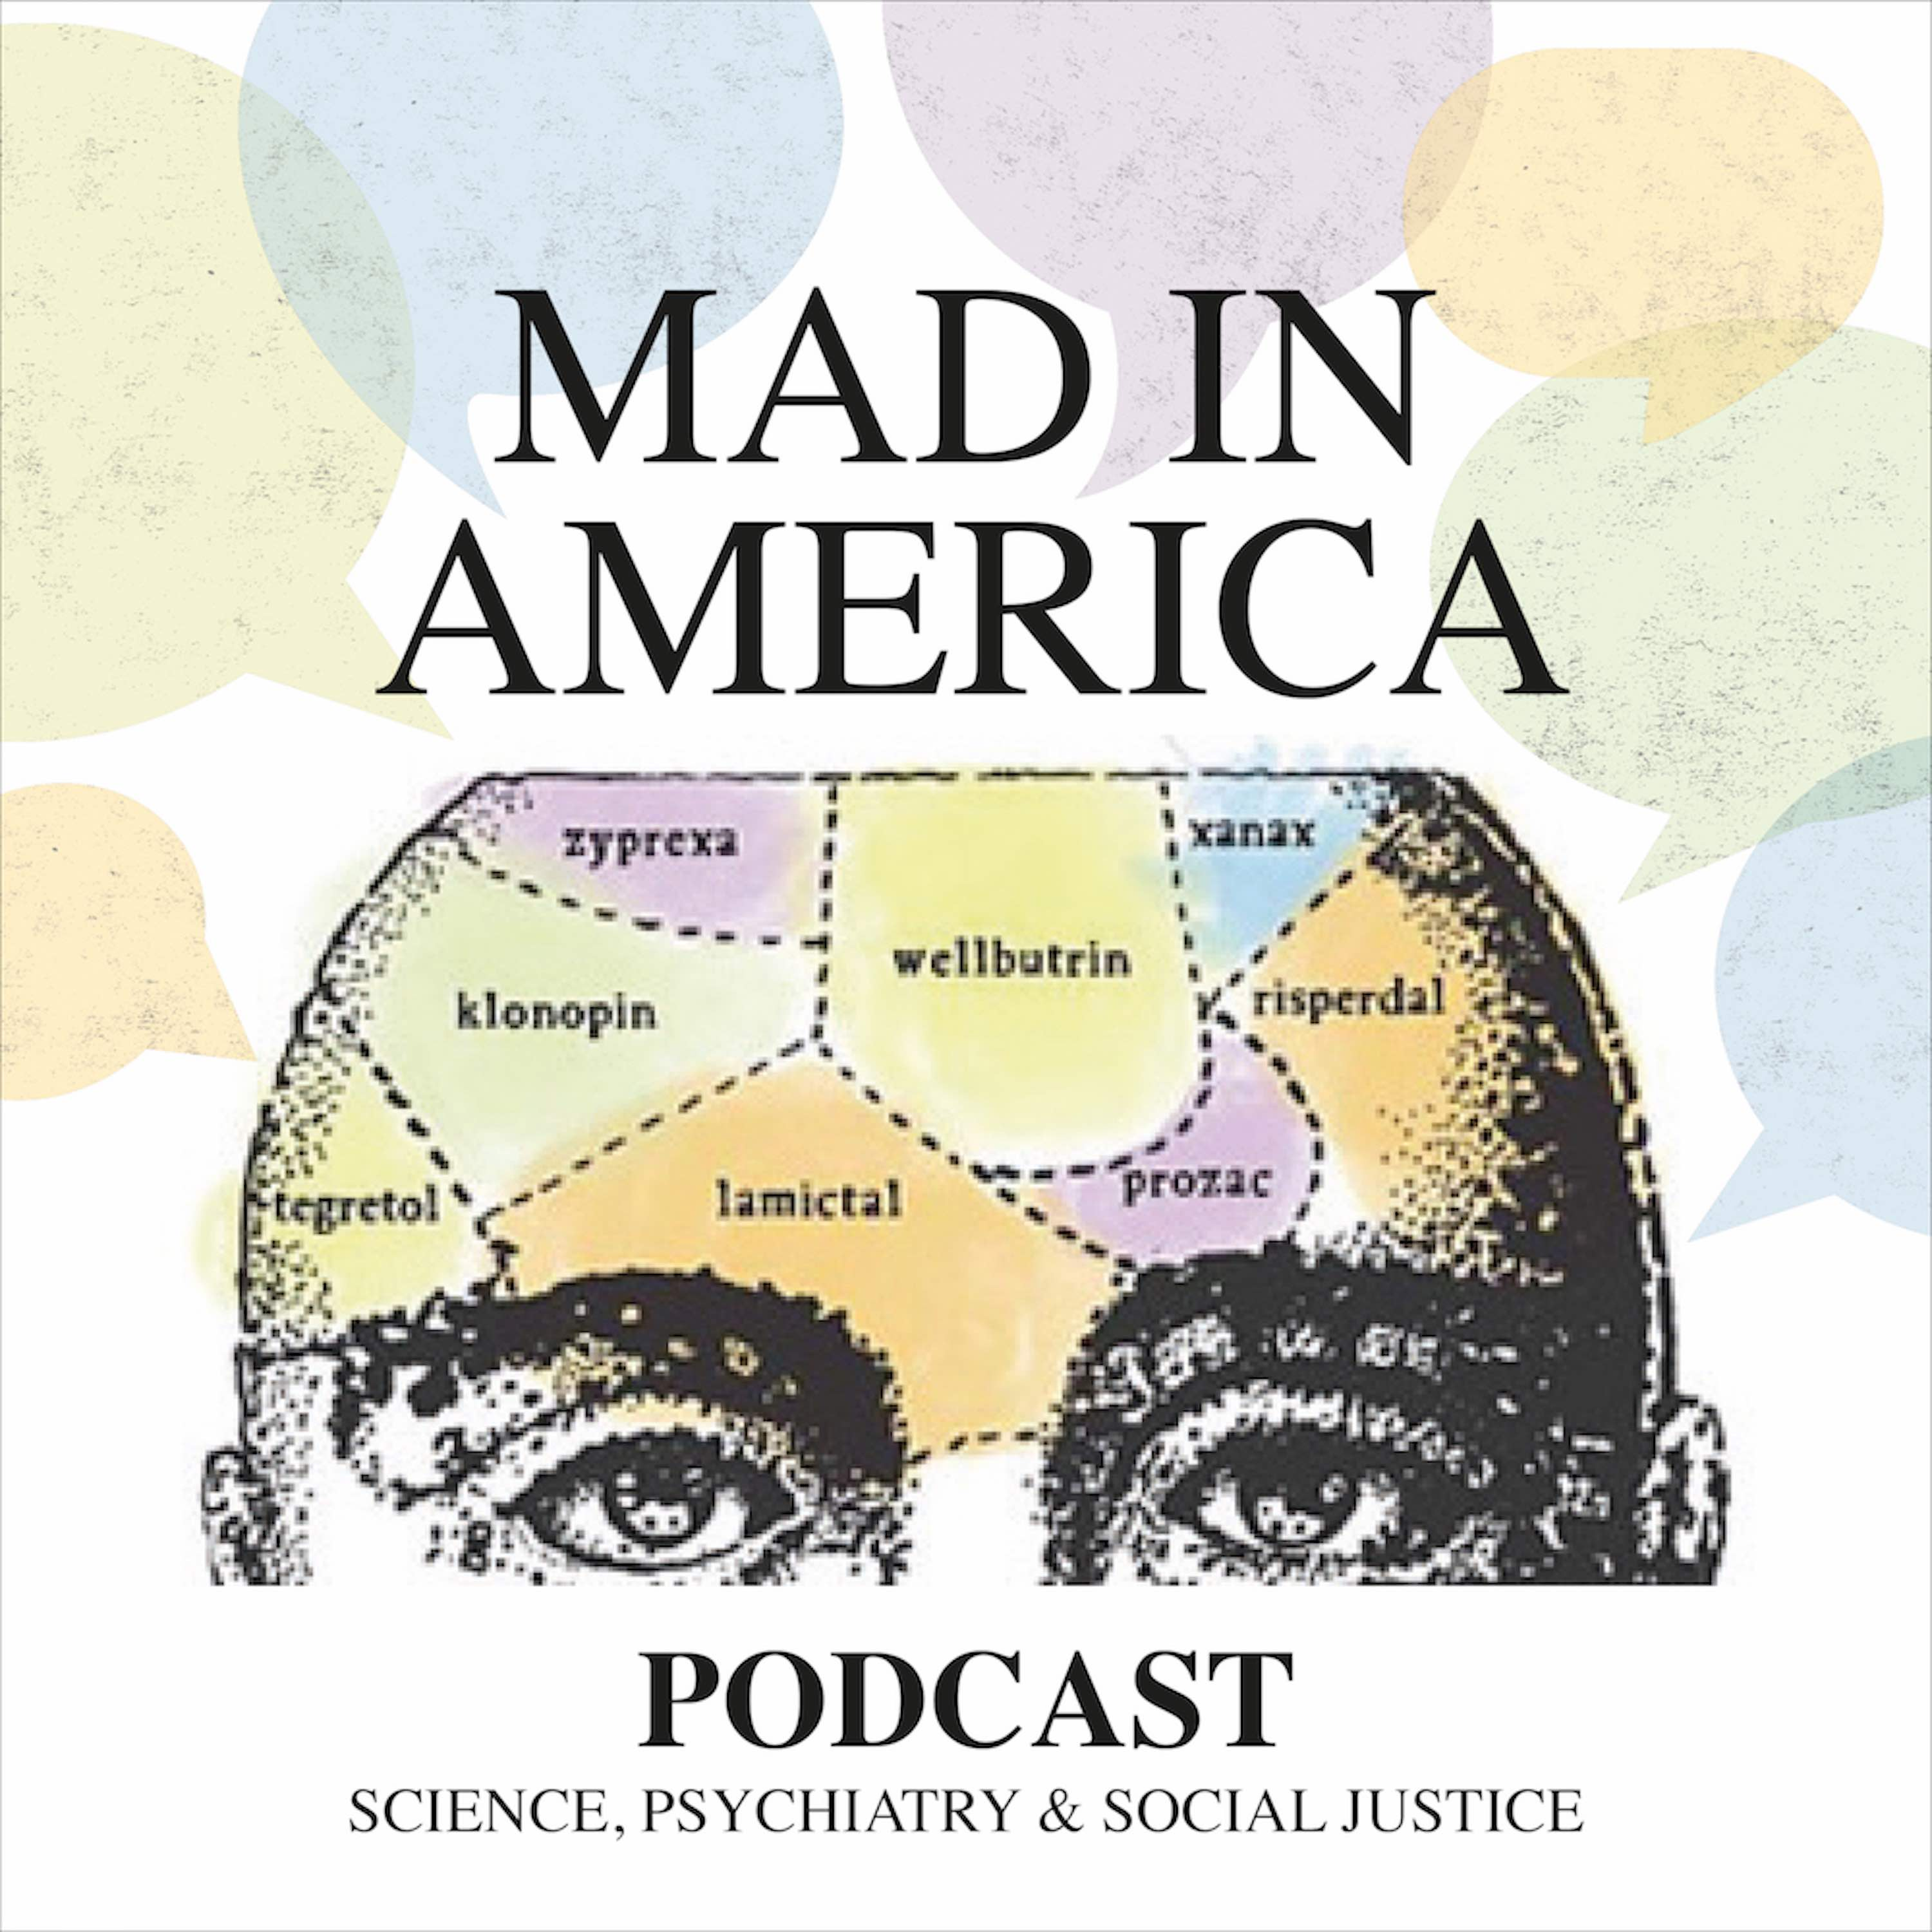 Mad in America: Rethinking Mental Health - David Mielke - Educating in the era of the psychiatric diagnosis